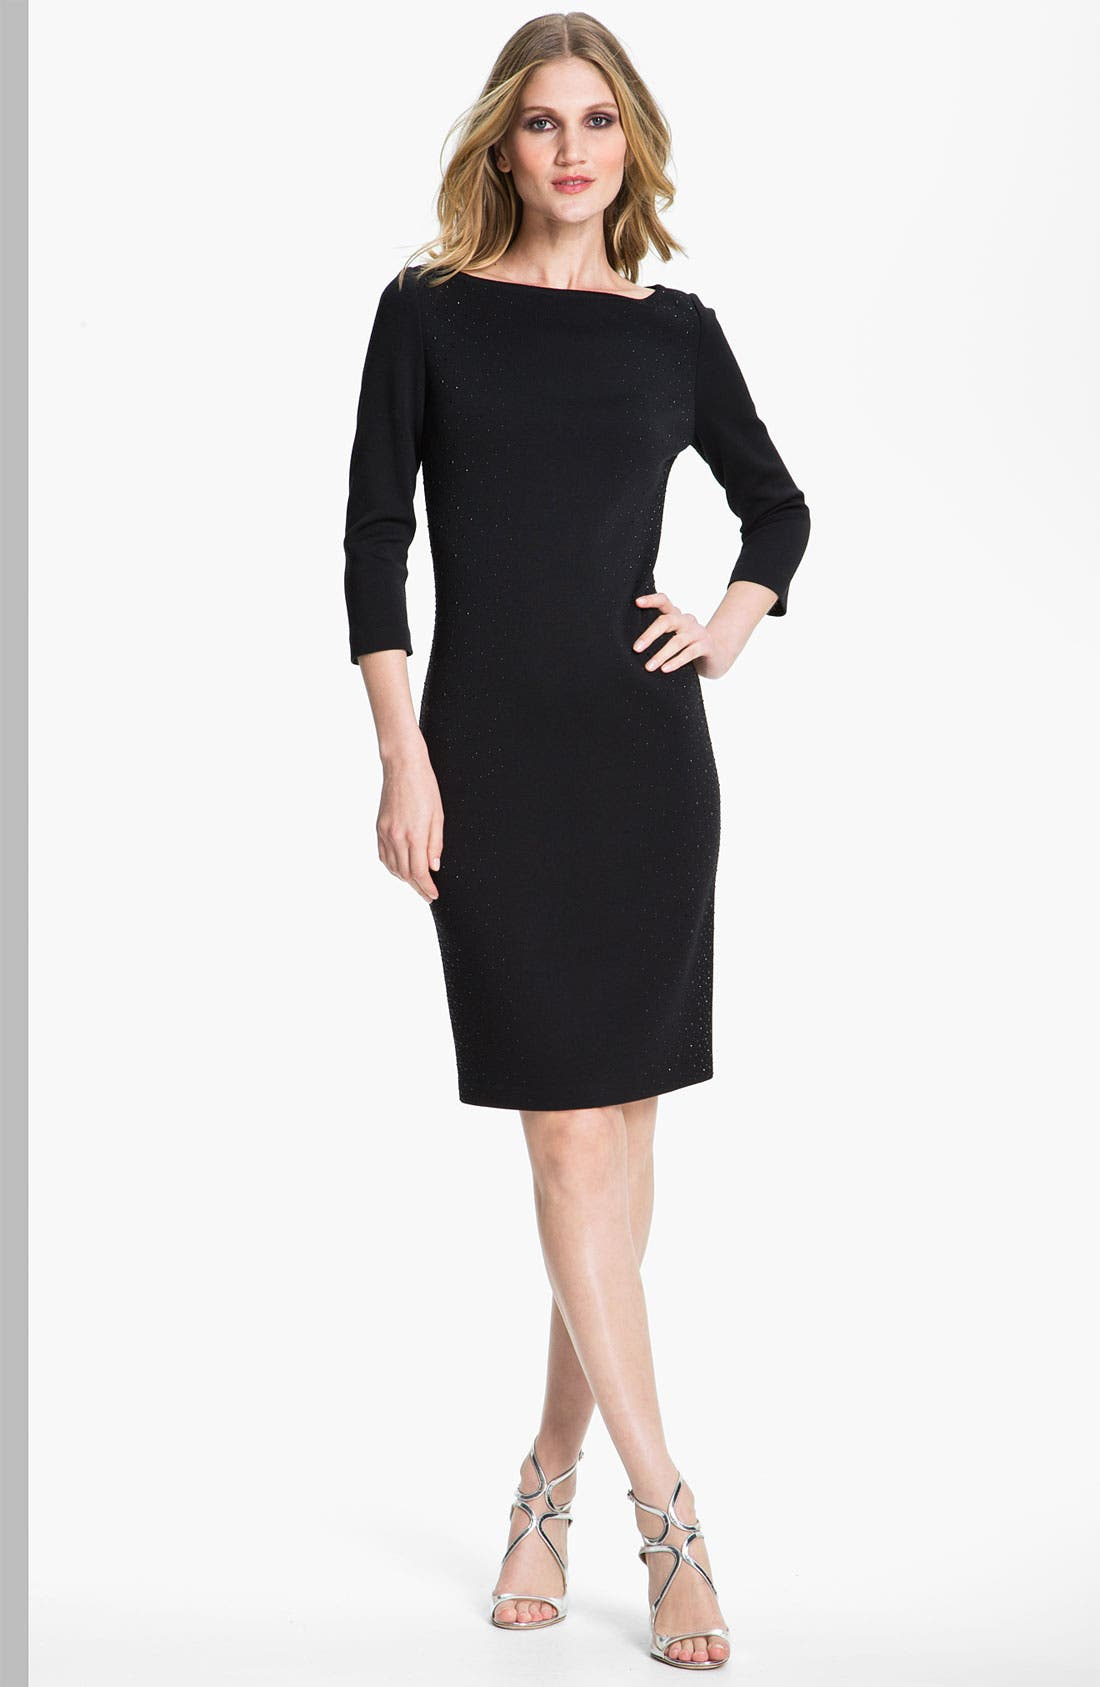 Alternate Image 1 Selected - St. John Collection Milano Knit Cocktail Dress